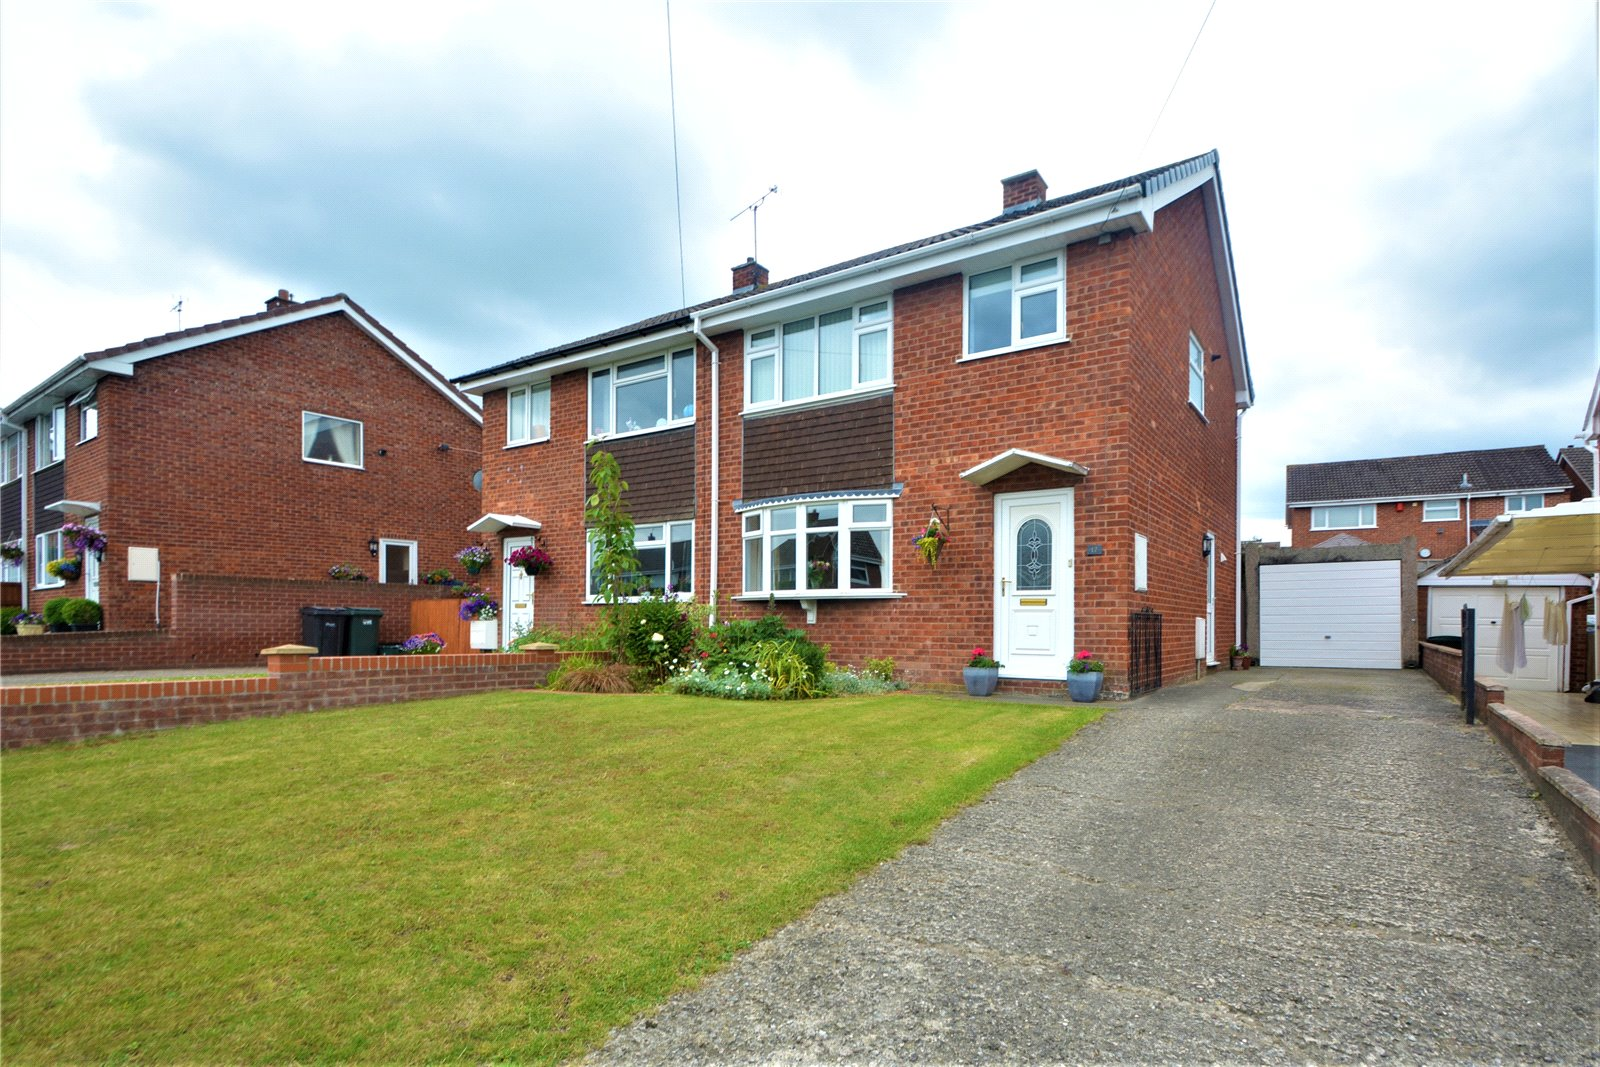 17 Prestage Close, Broseley, Shropshire, TF12